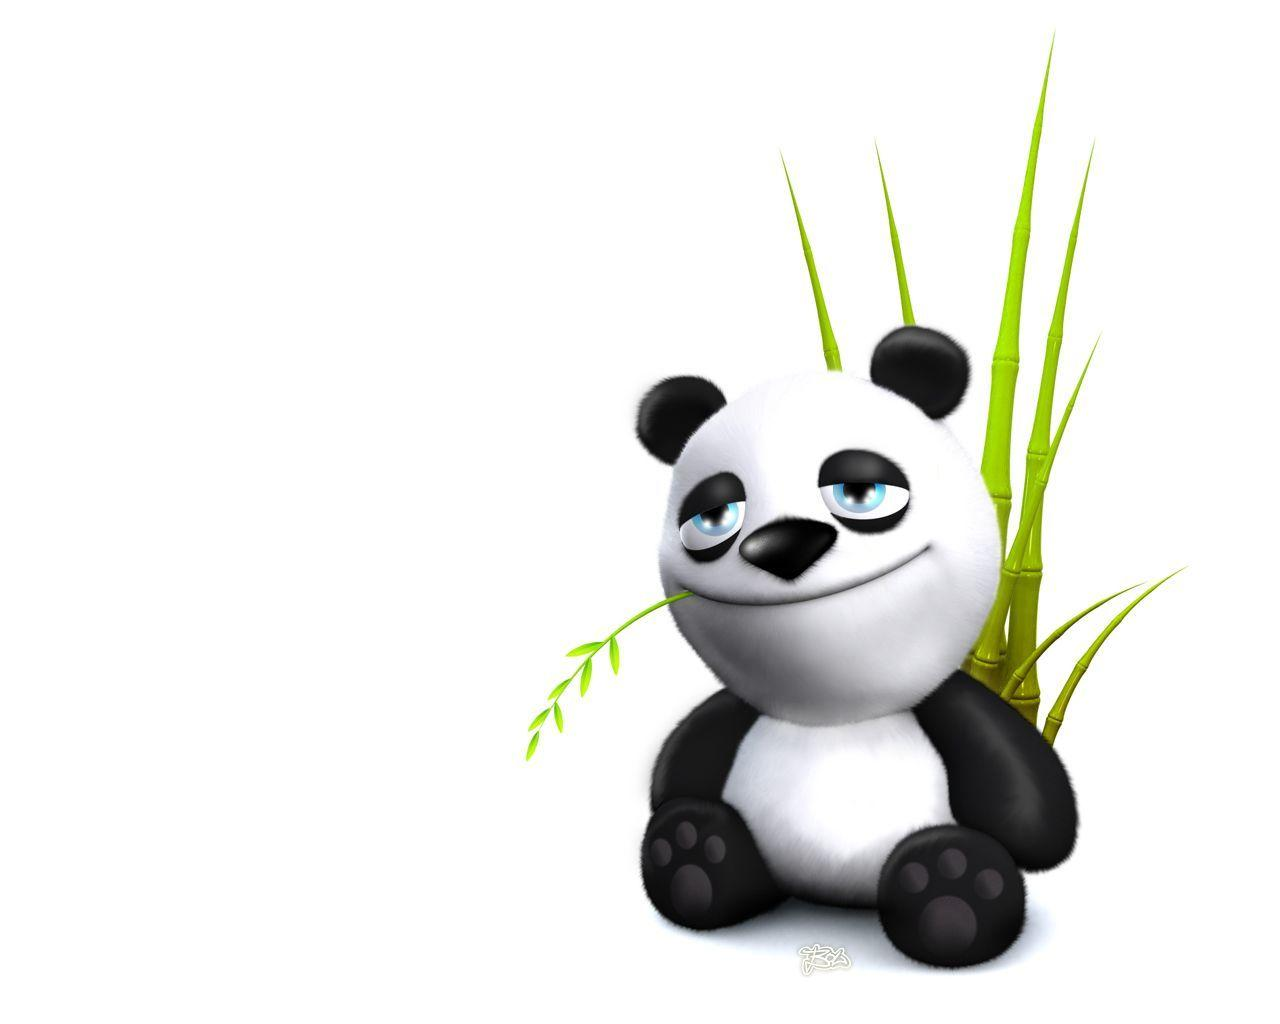 HD Desktop Wallpapers: 3D Cartoon Wallpapers HD